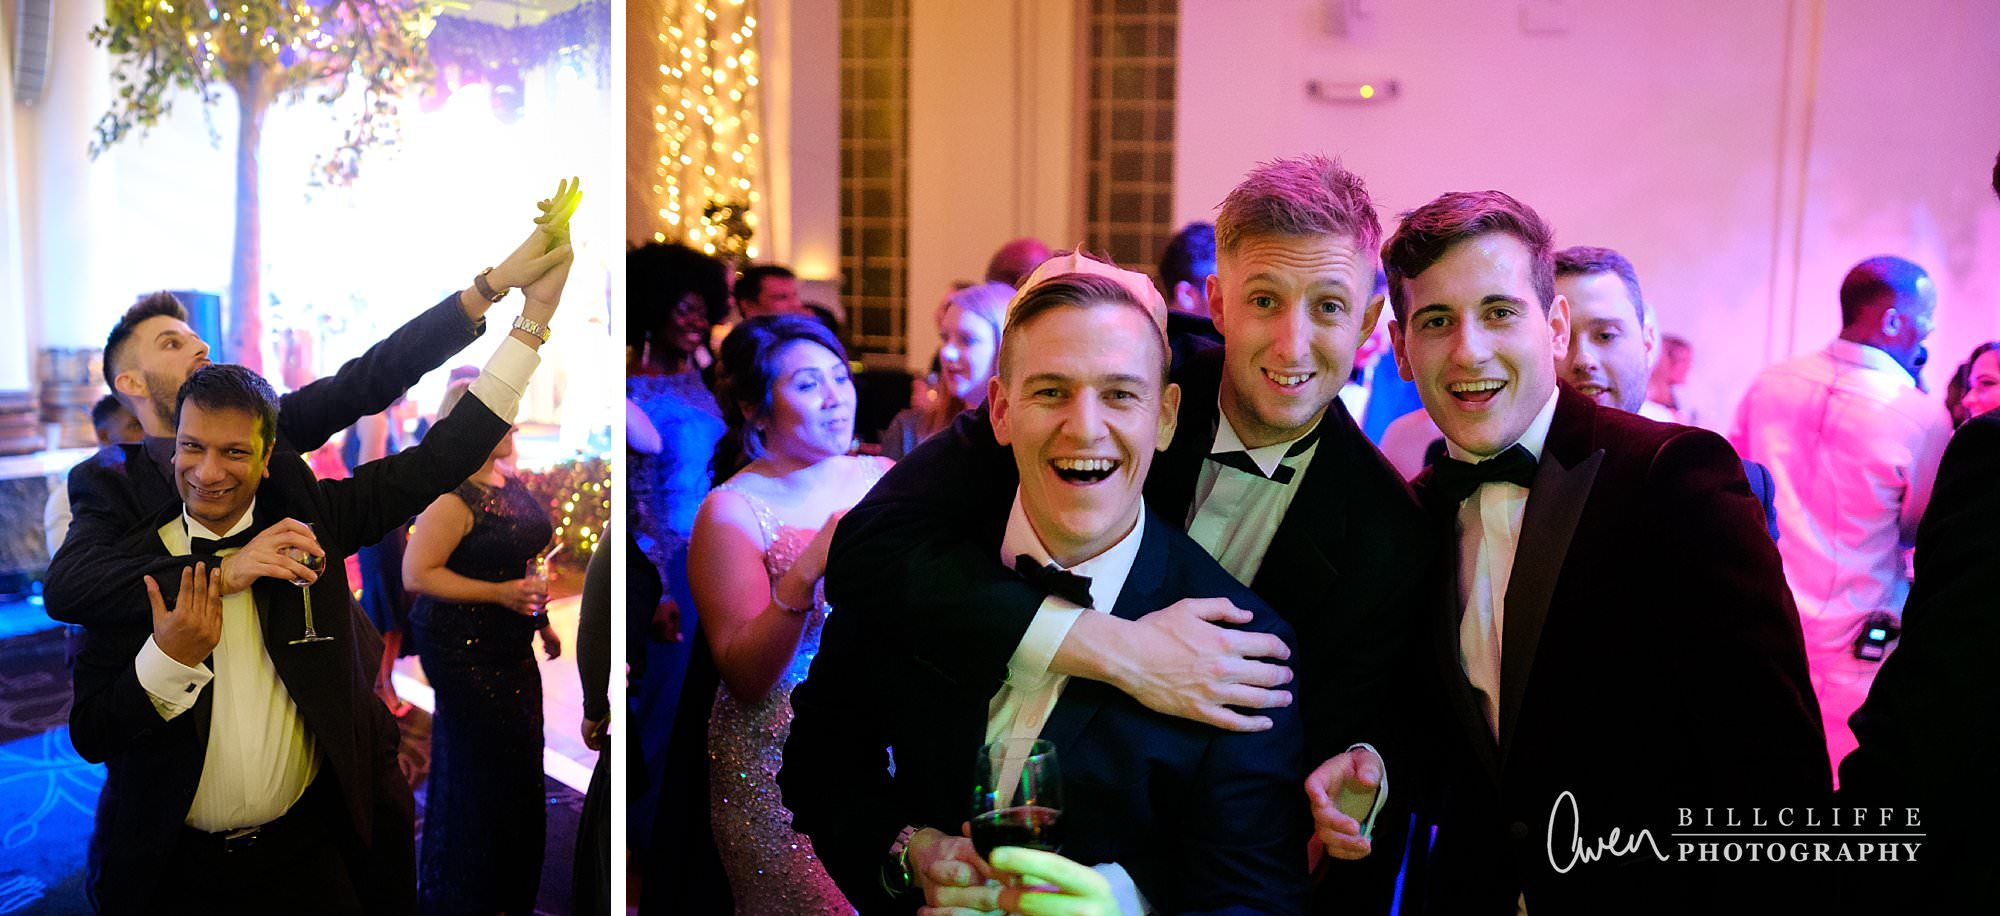 london event photographer 8 northumberland avenue mh 020 - A Christmas Party at 8 Northumberland